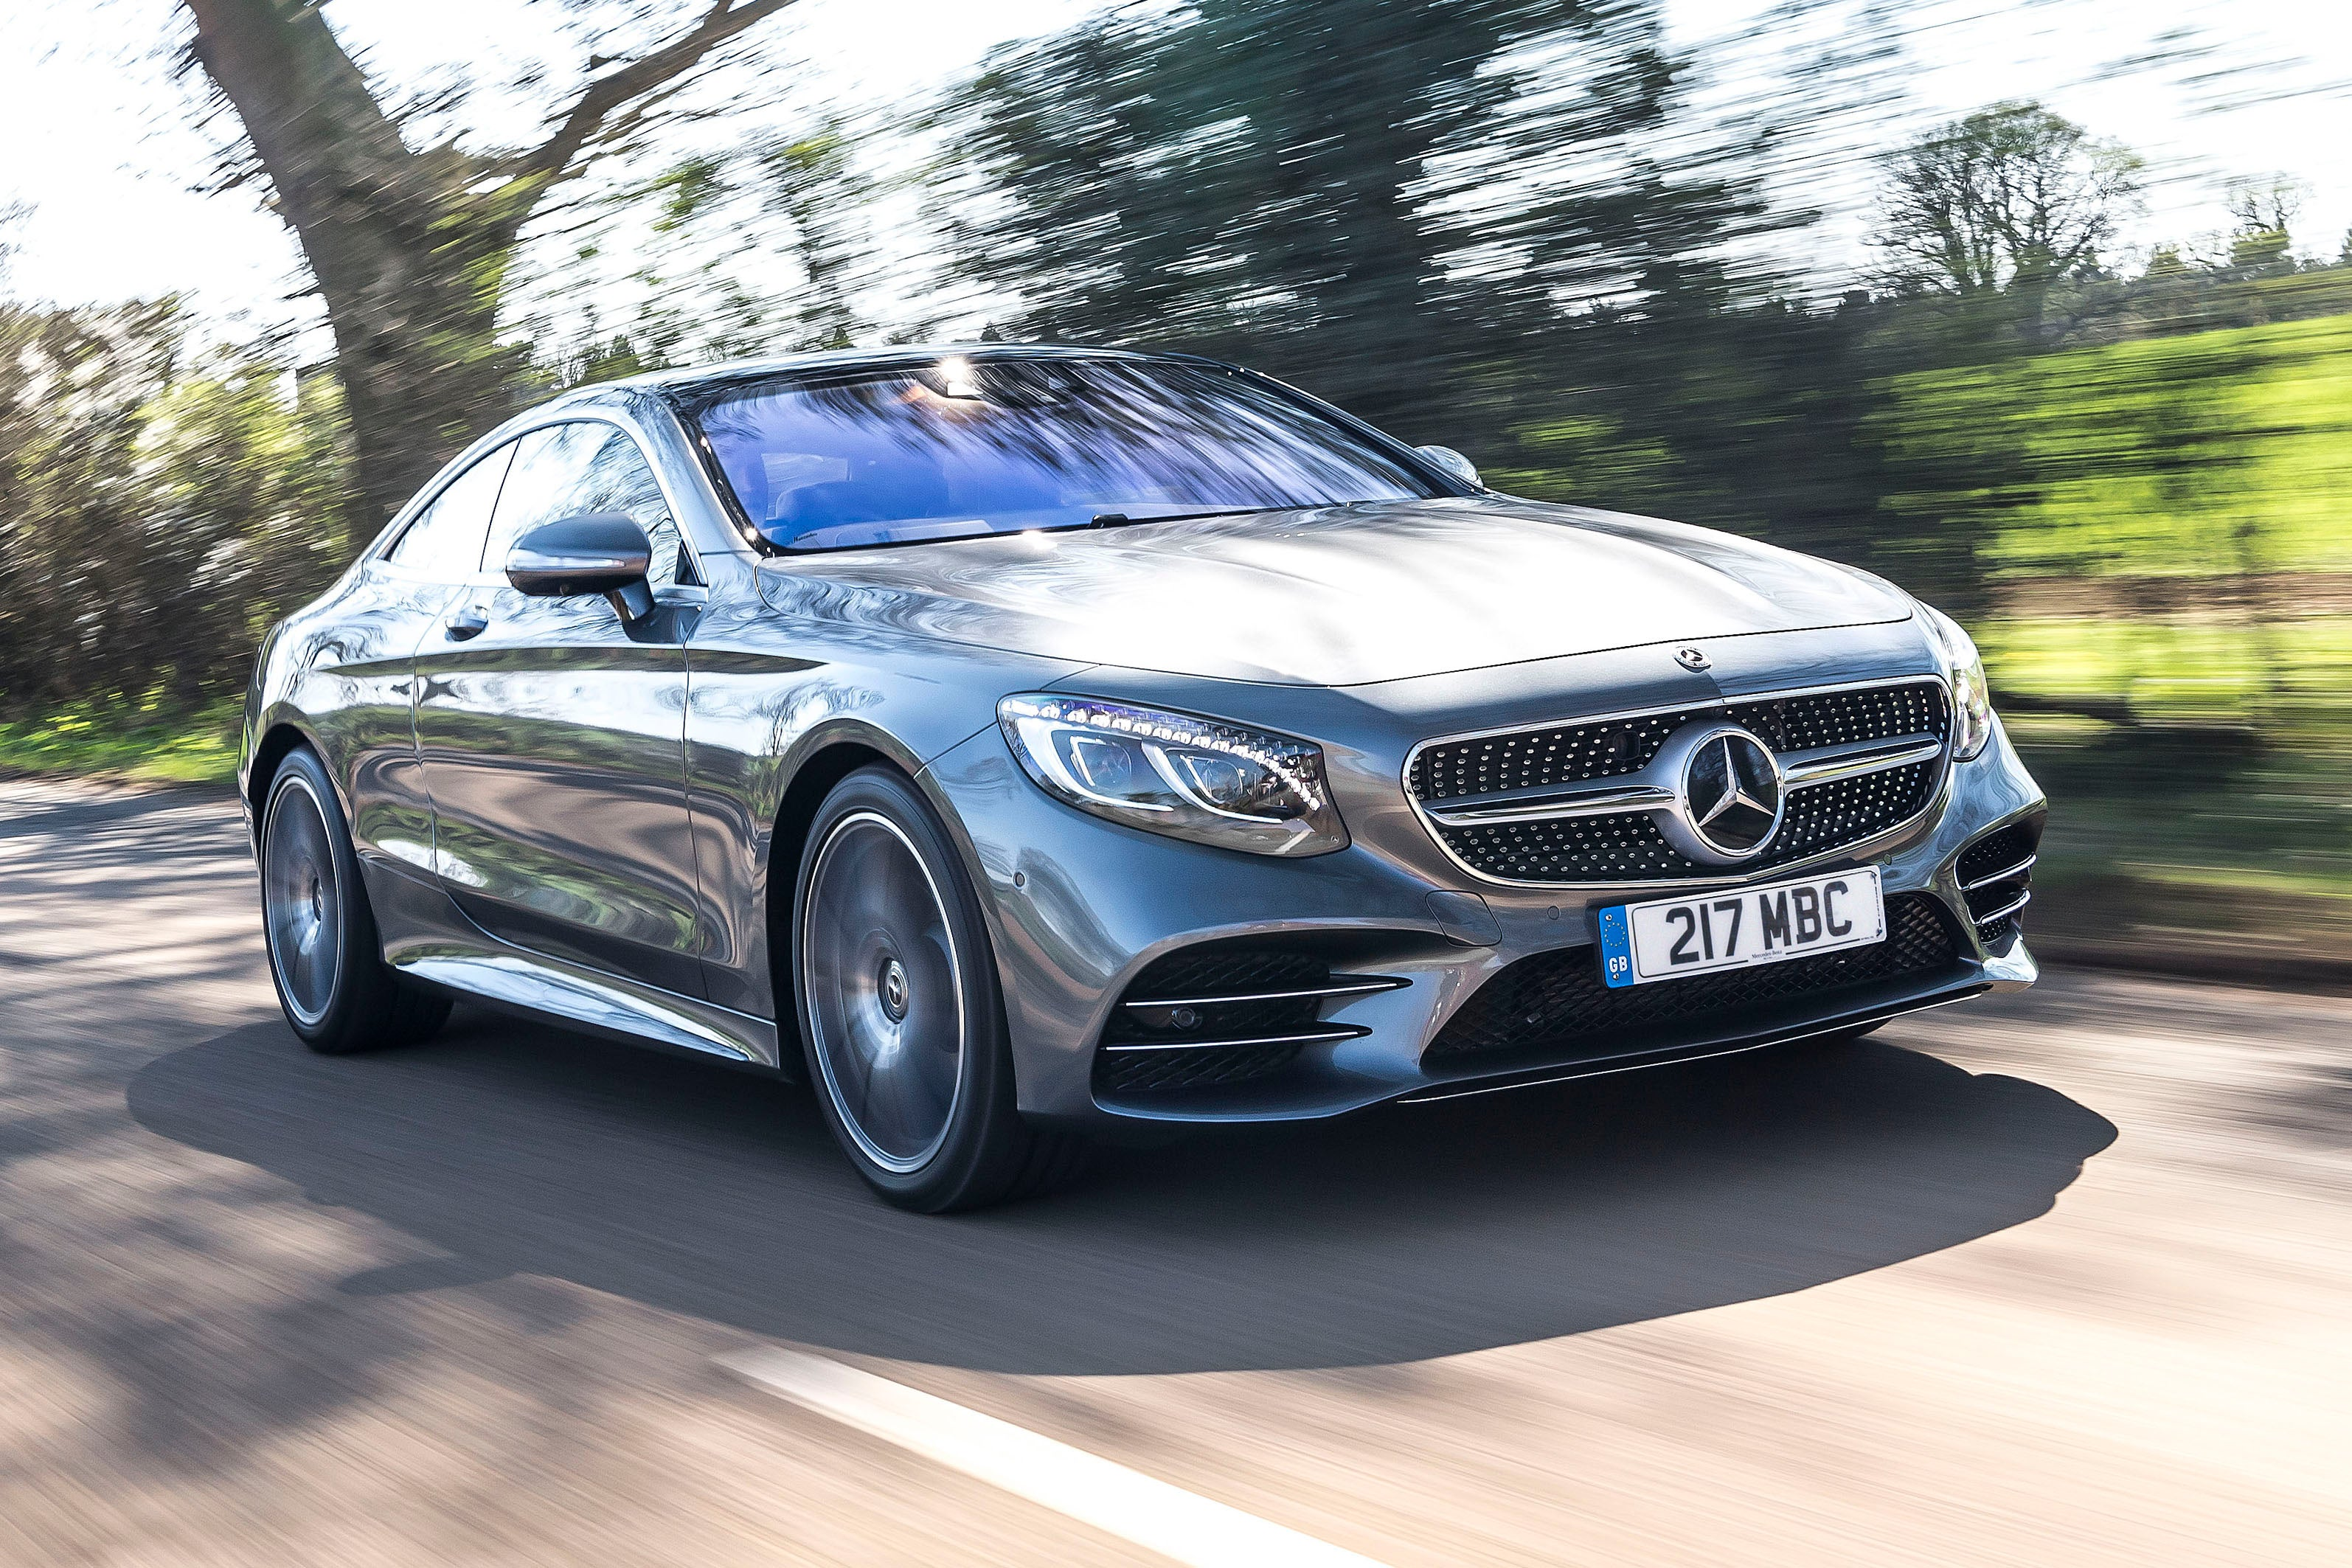 Mercedes S-Class Coupe frontright exterior